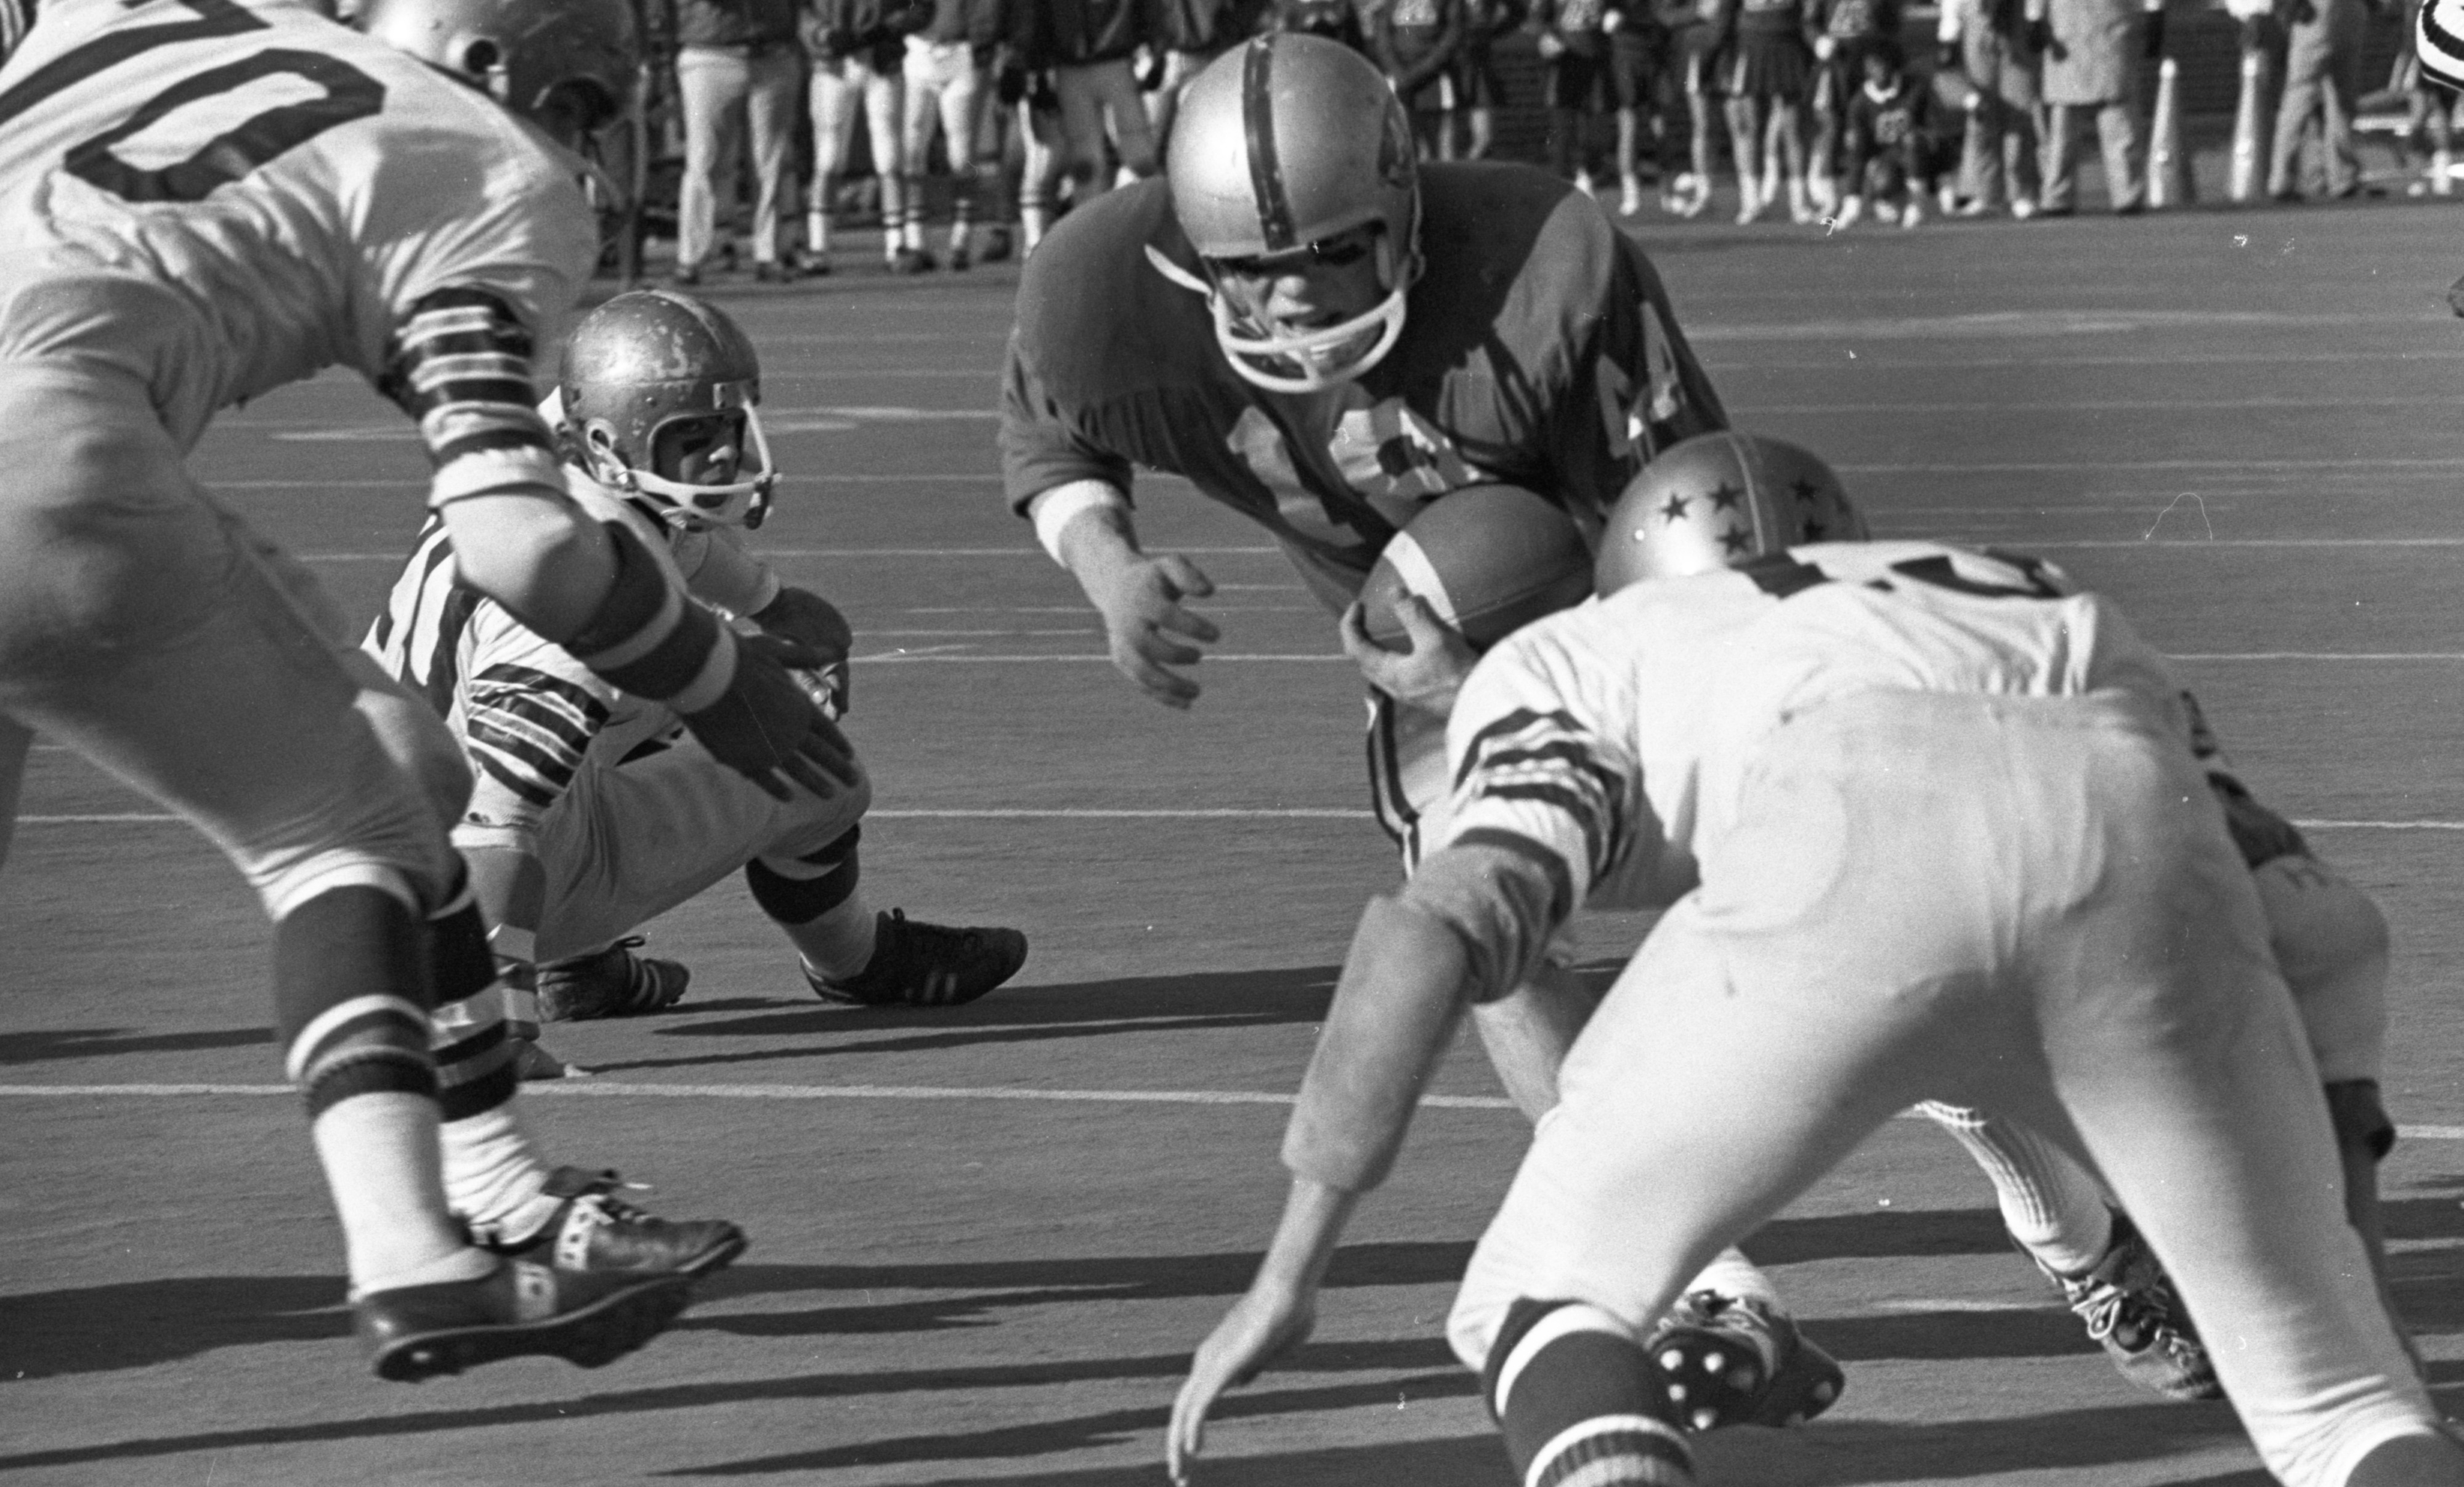 Crosstown Rivals Meet For First Time - Pioneer vs. Huron Football, November 15, 1970 image